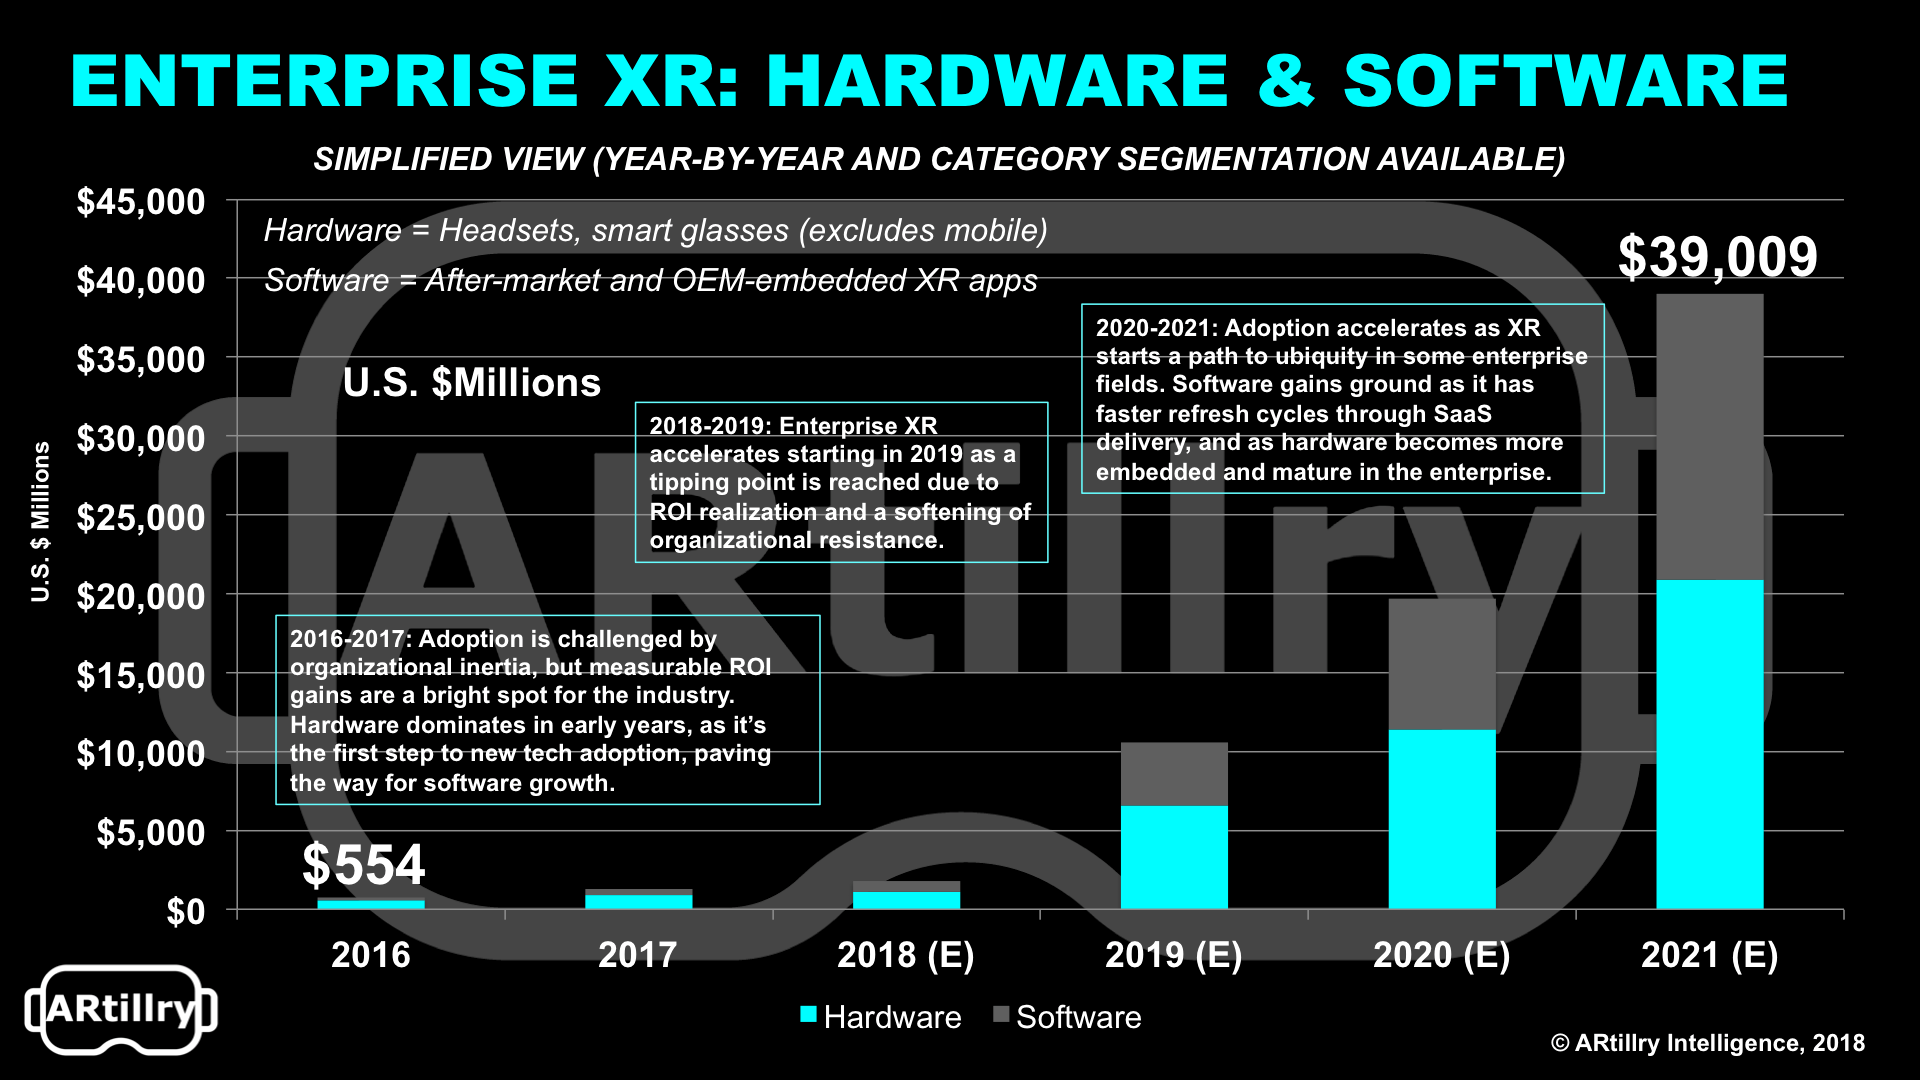 XR Revenue Outlook (year-by-year detail provided in full report)